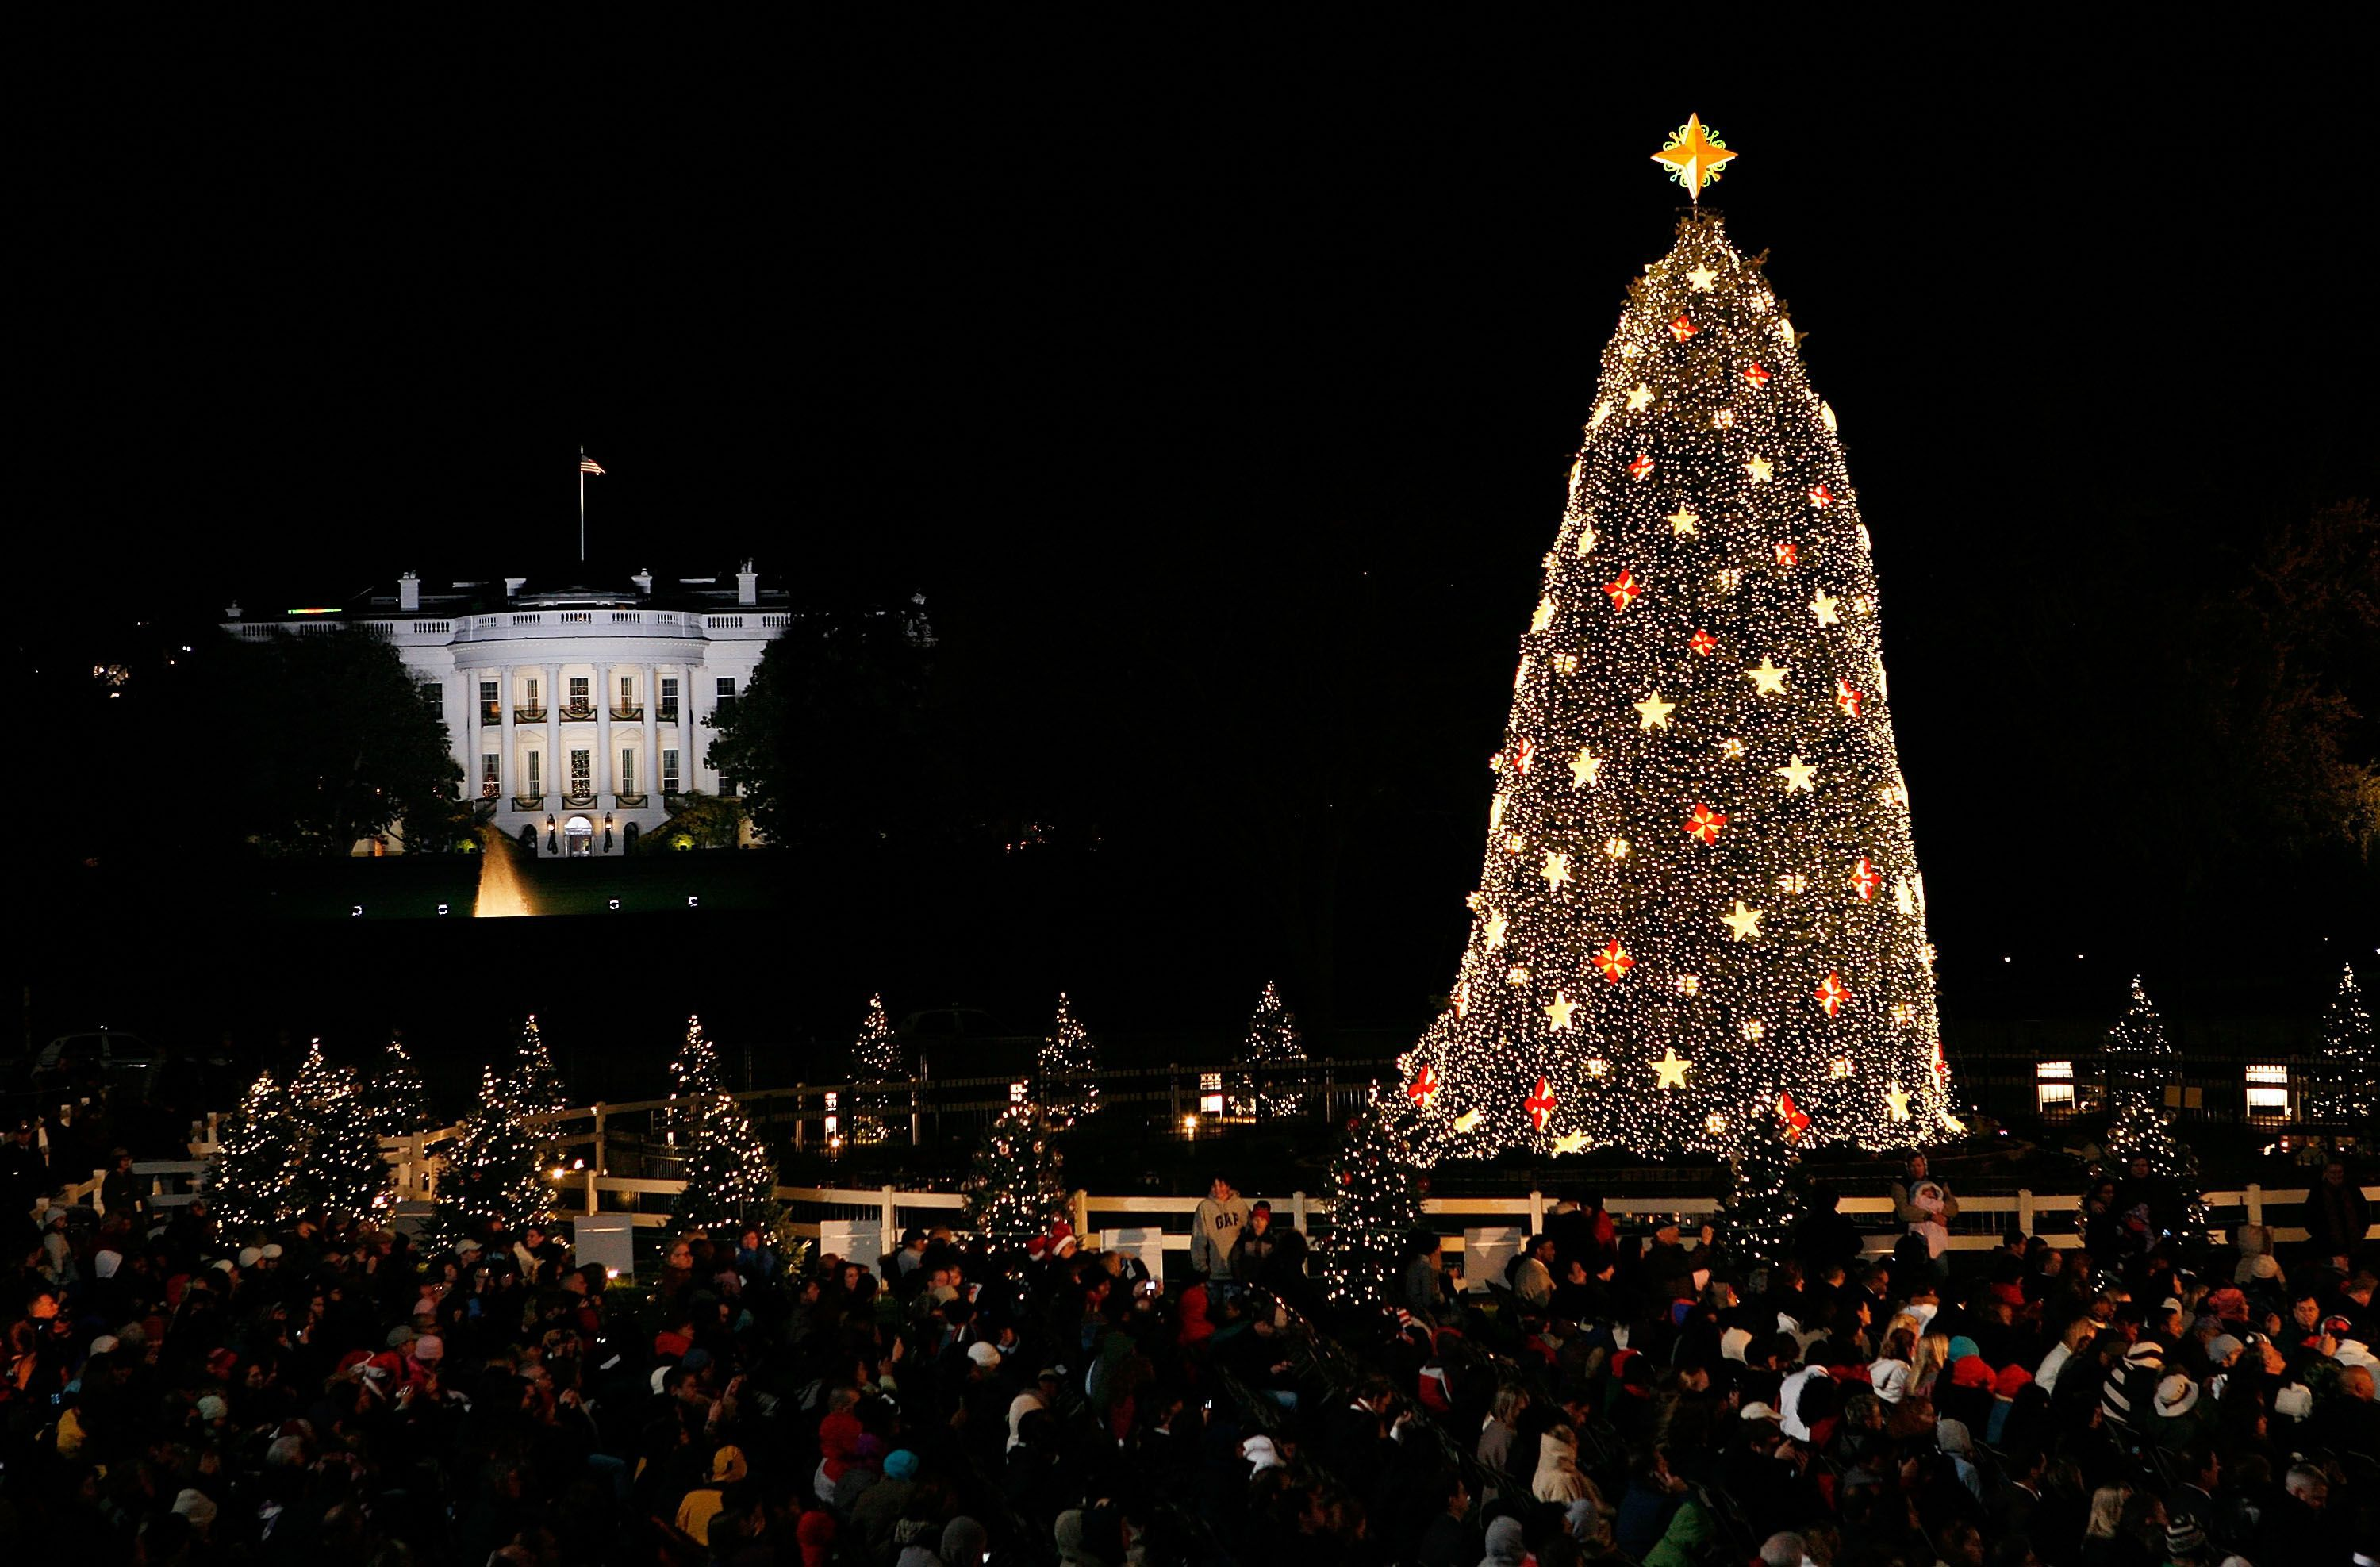 National Christmas tree in front of the White House